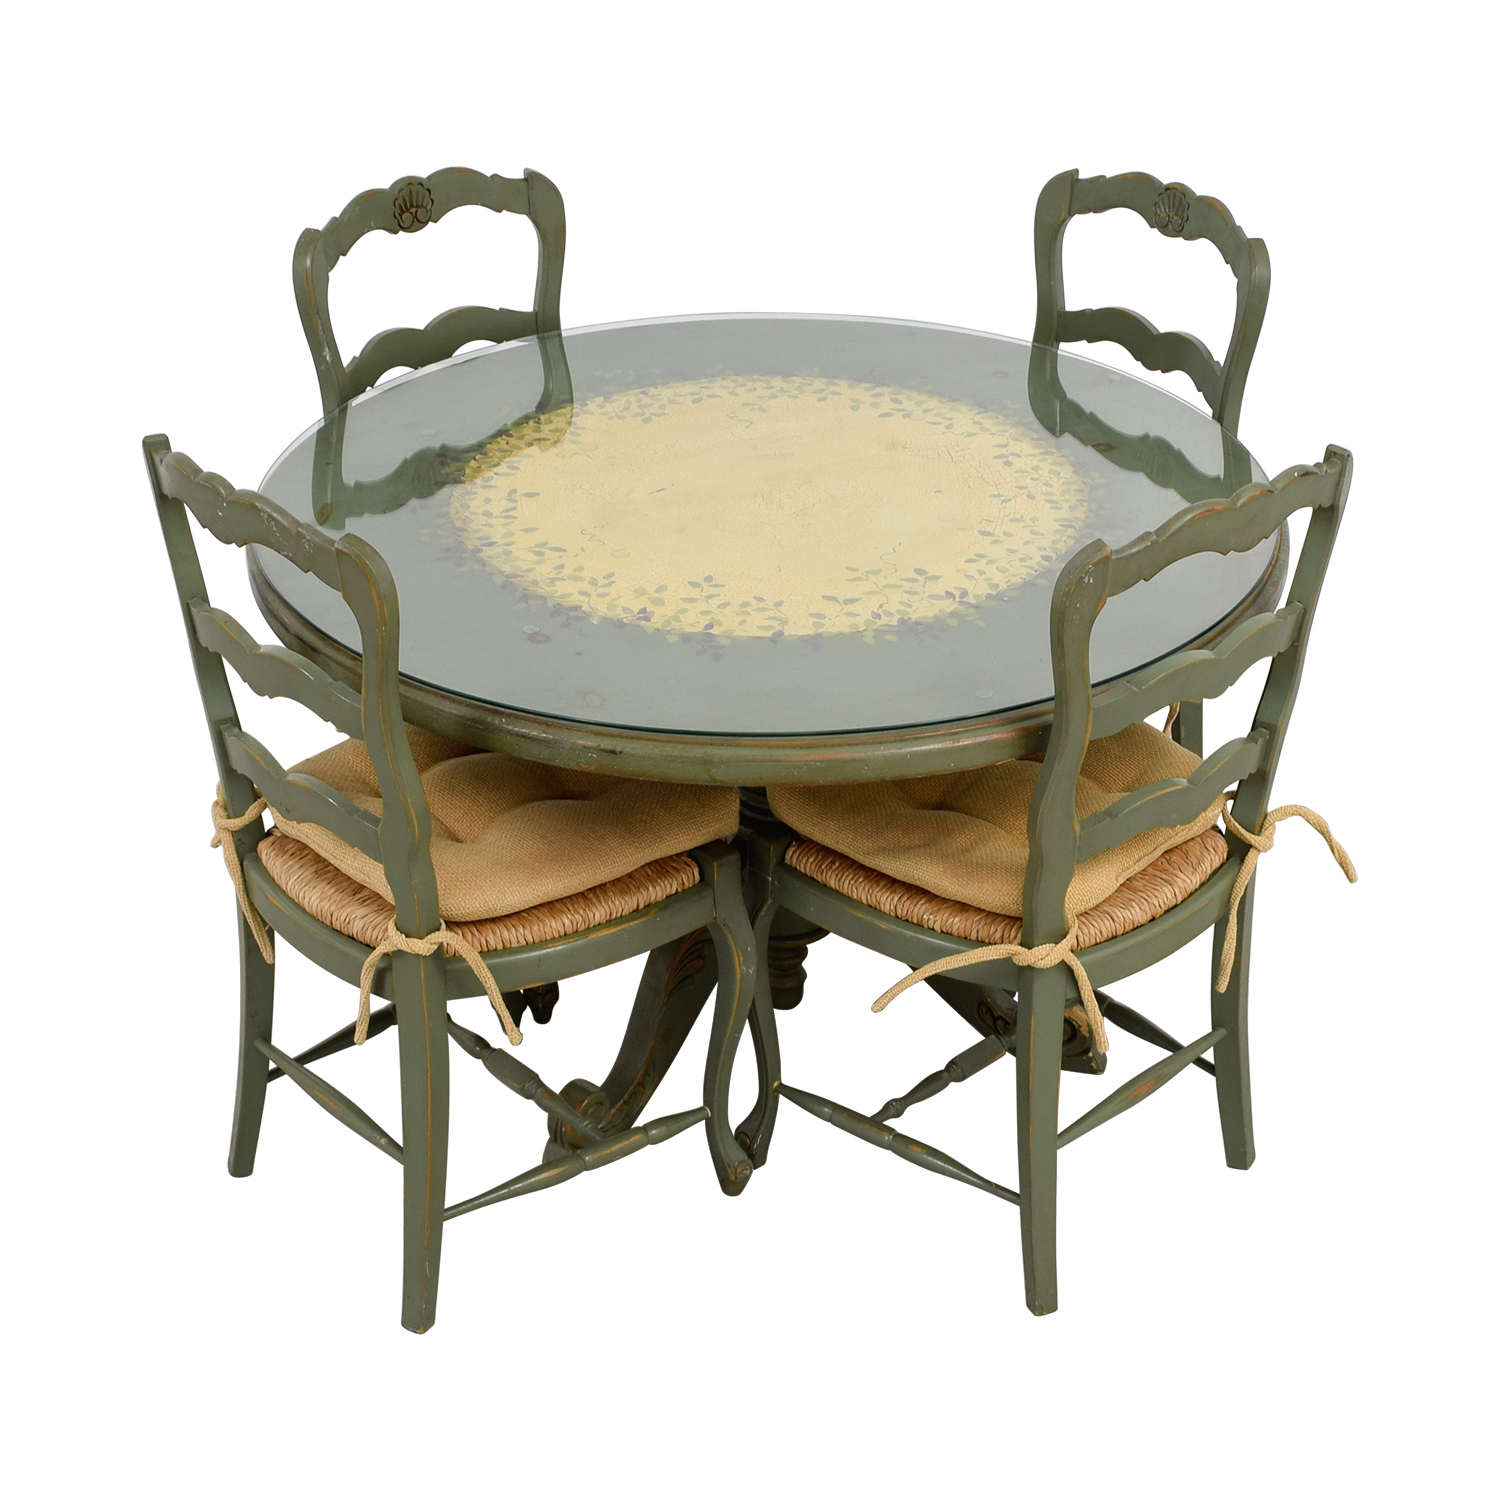 used kitchen chairs ergonomic chair evaluation form 88 off hand painted country style table and